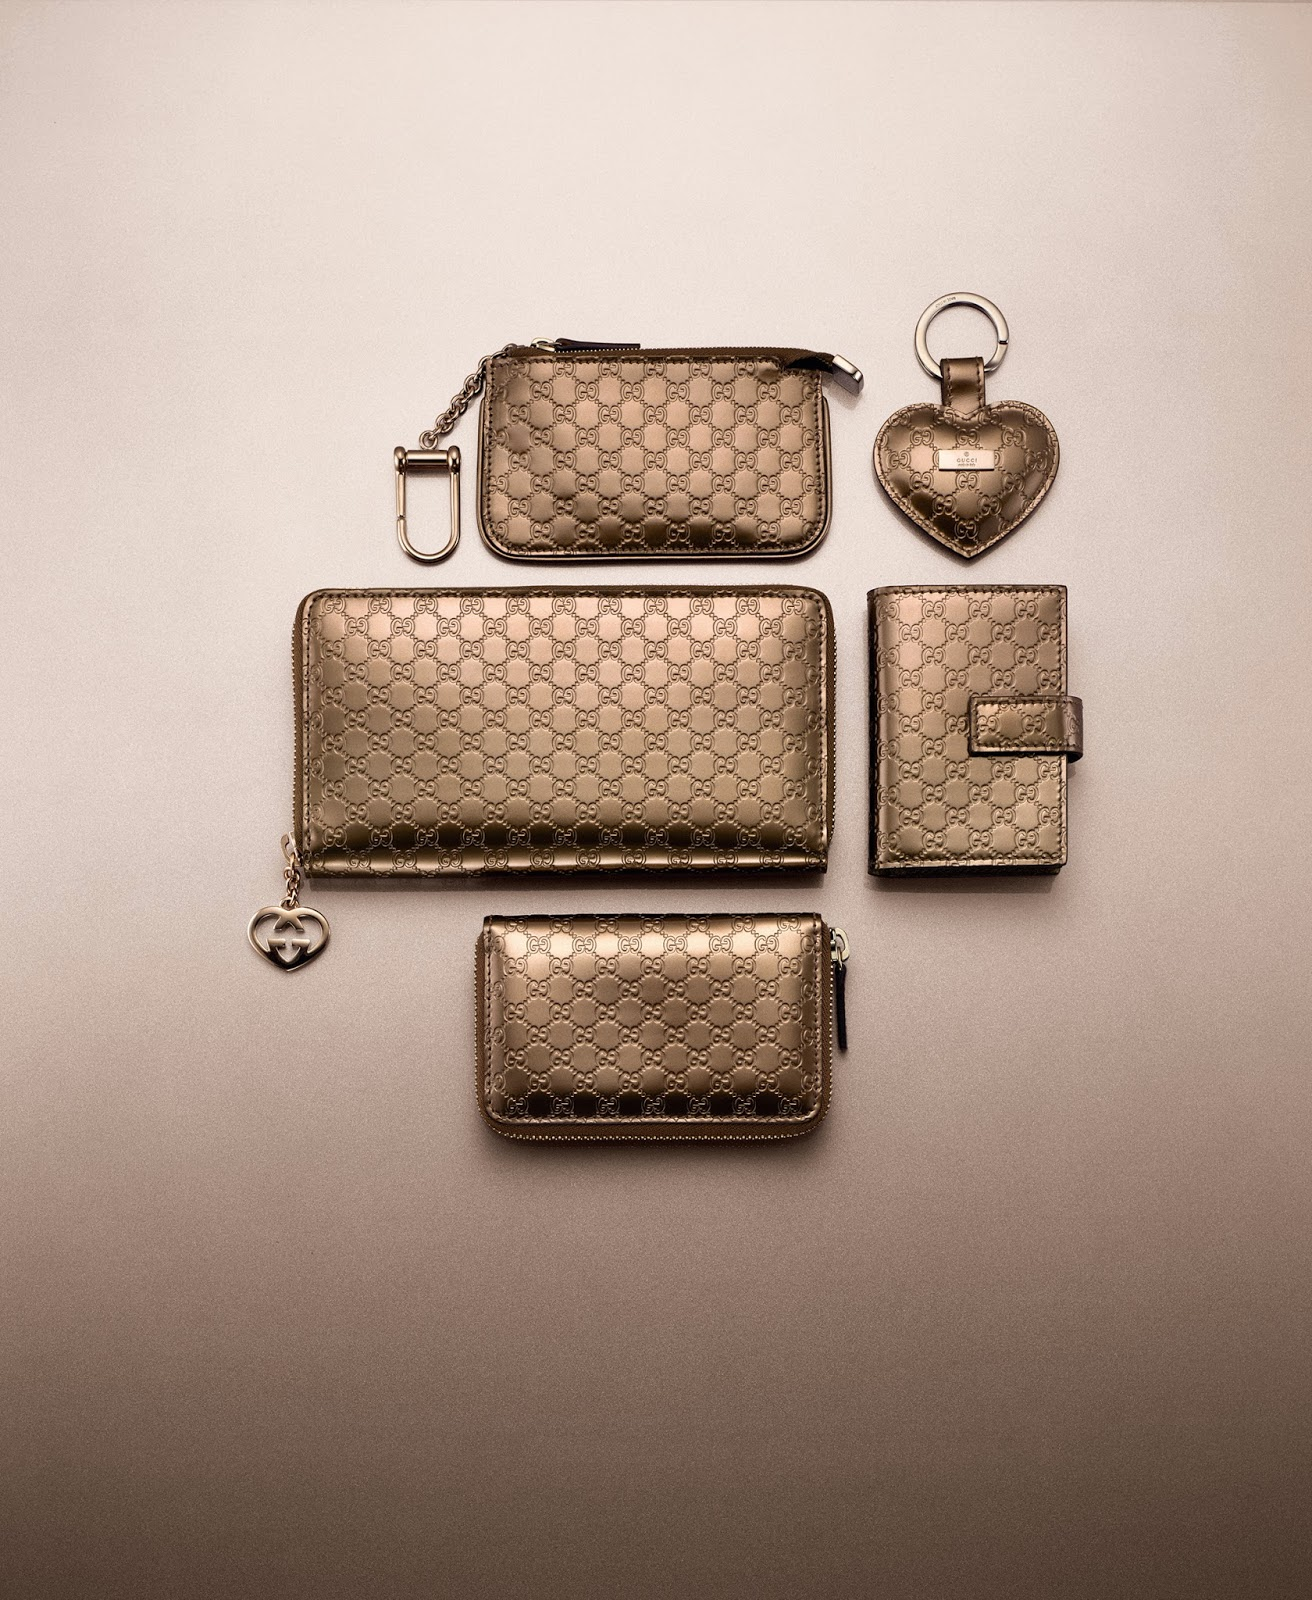 gucci key pouch. heart key fob rm540, zip-around card case rm800, rm1,040, zip around wallet rm2,080, pouch price upon application gucci k